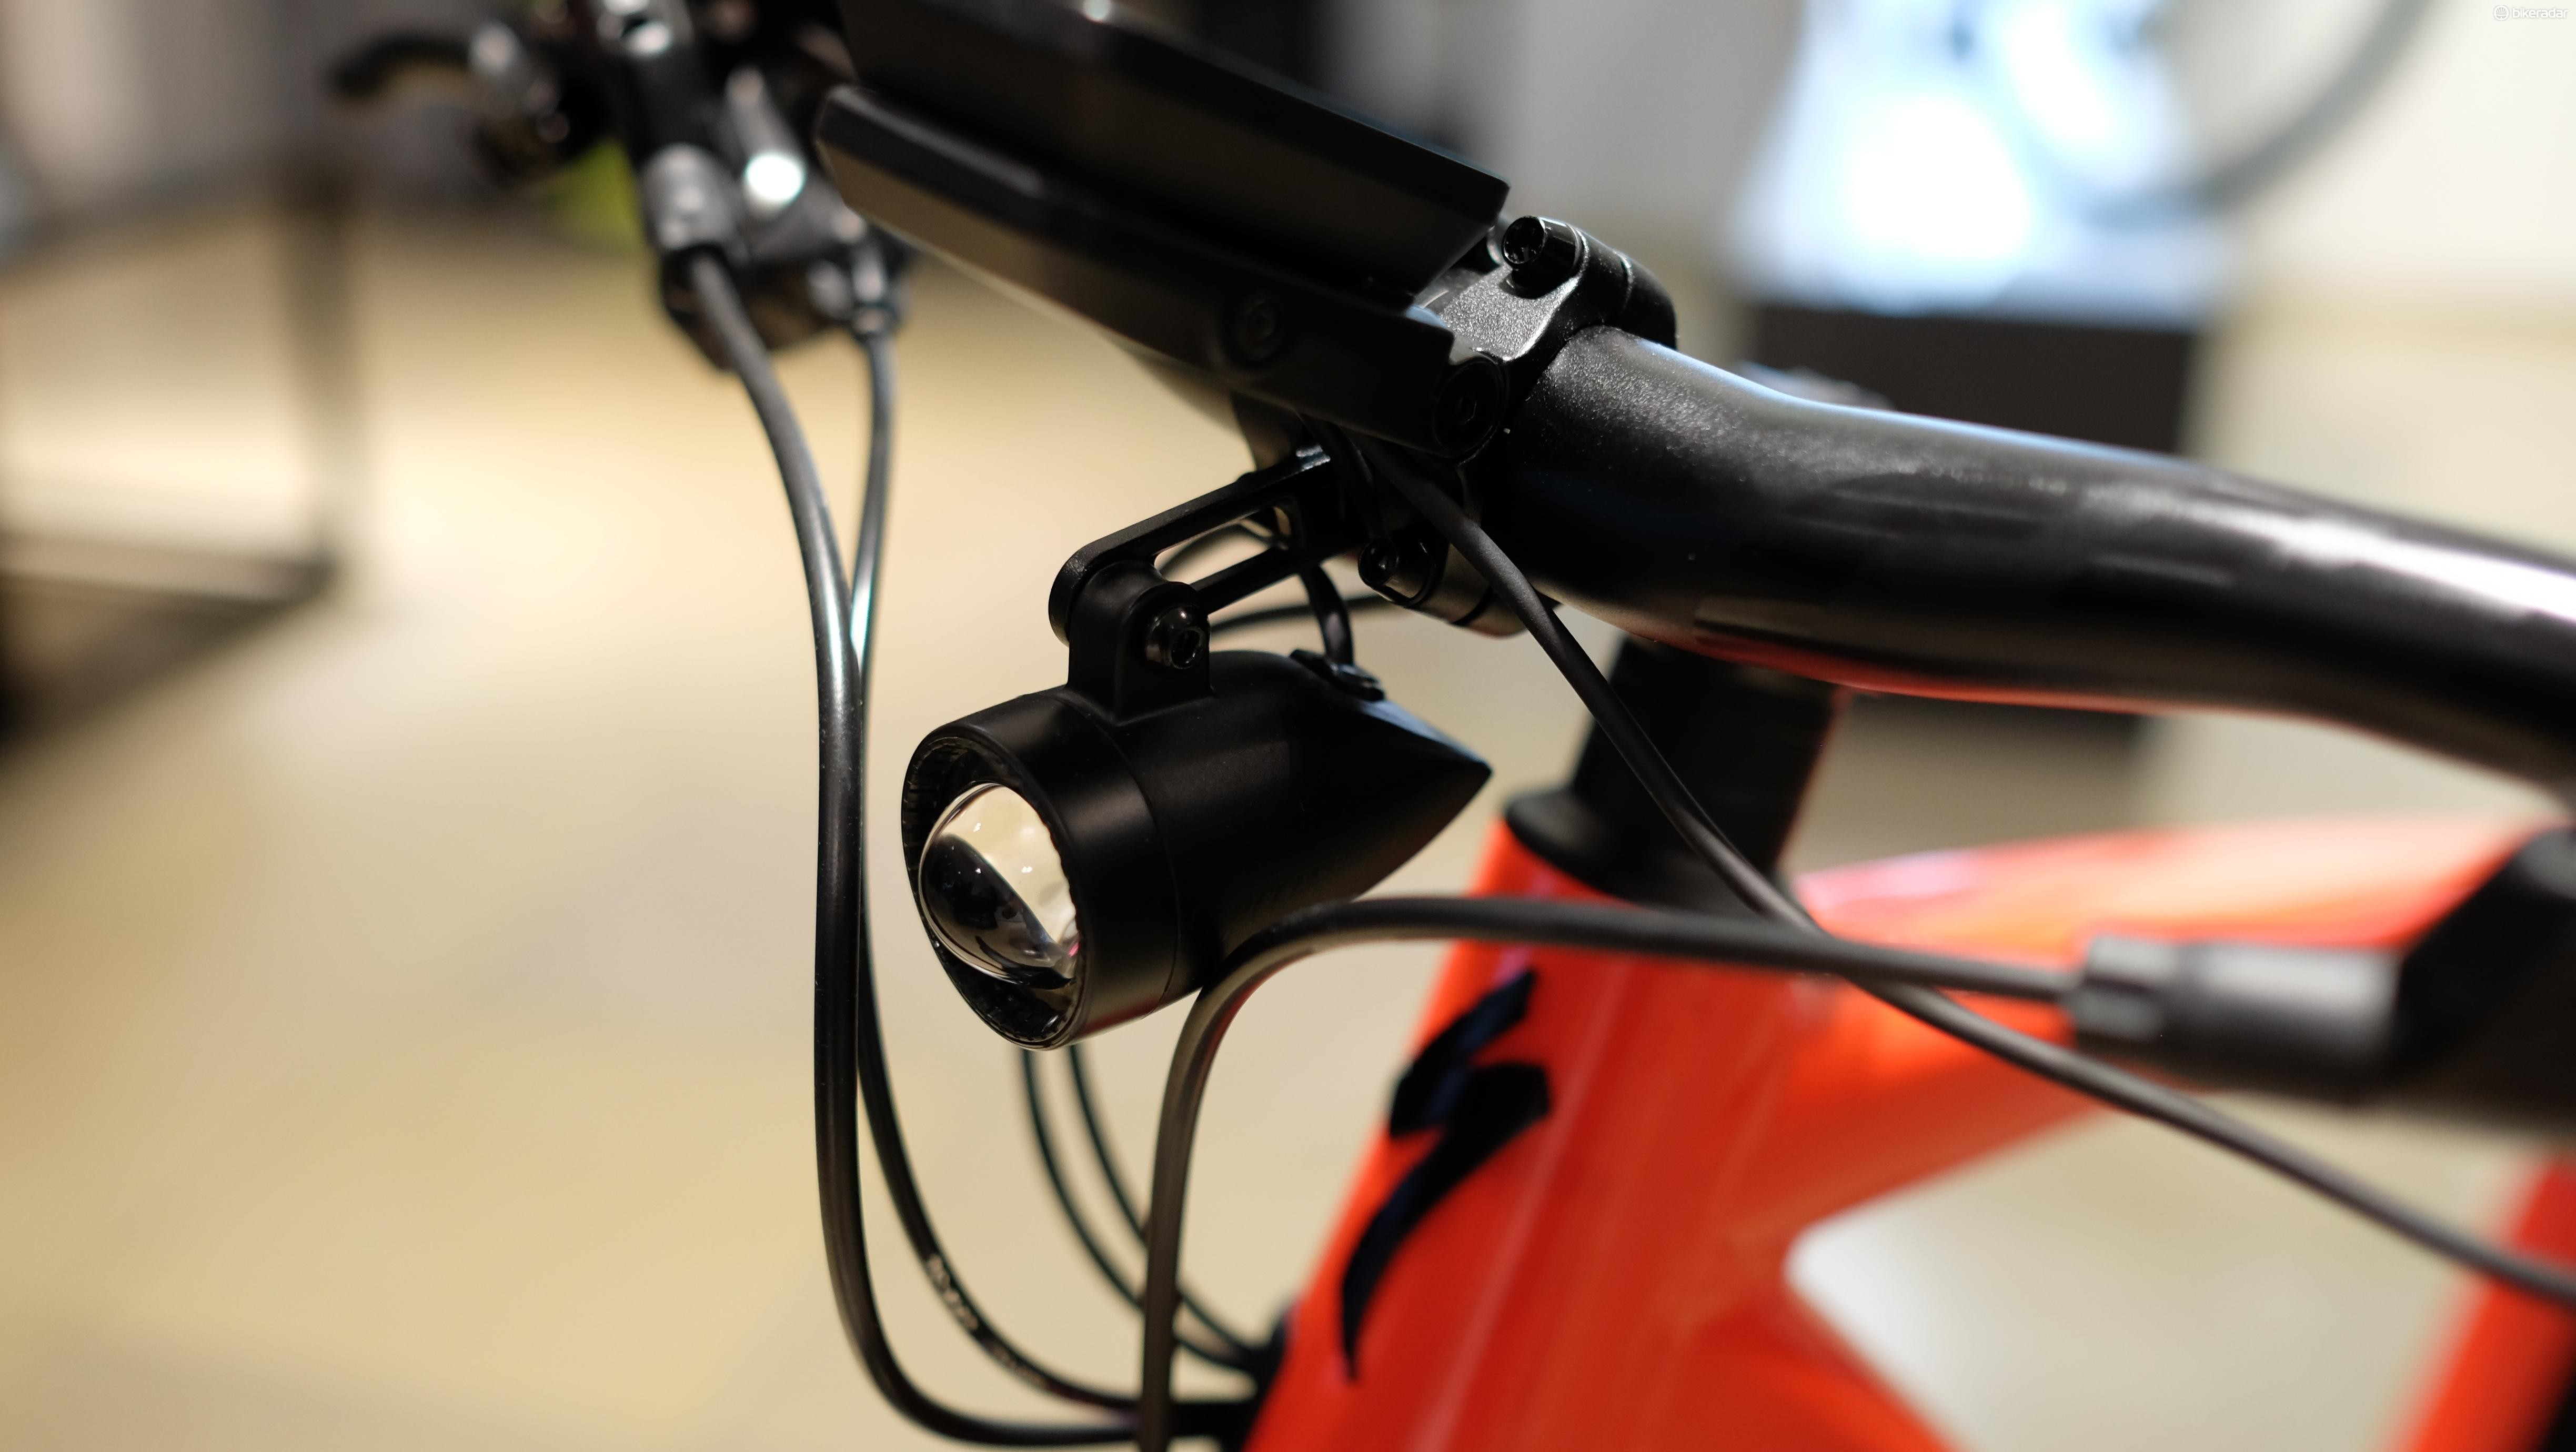 The Turbo Vado's front light, complete with its distinctive aspherical lens